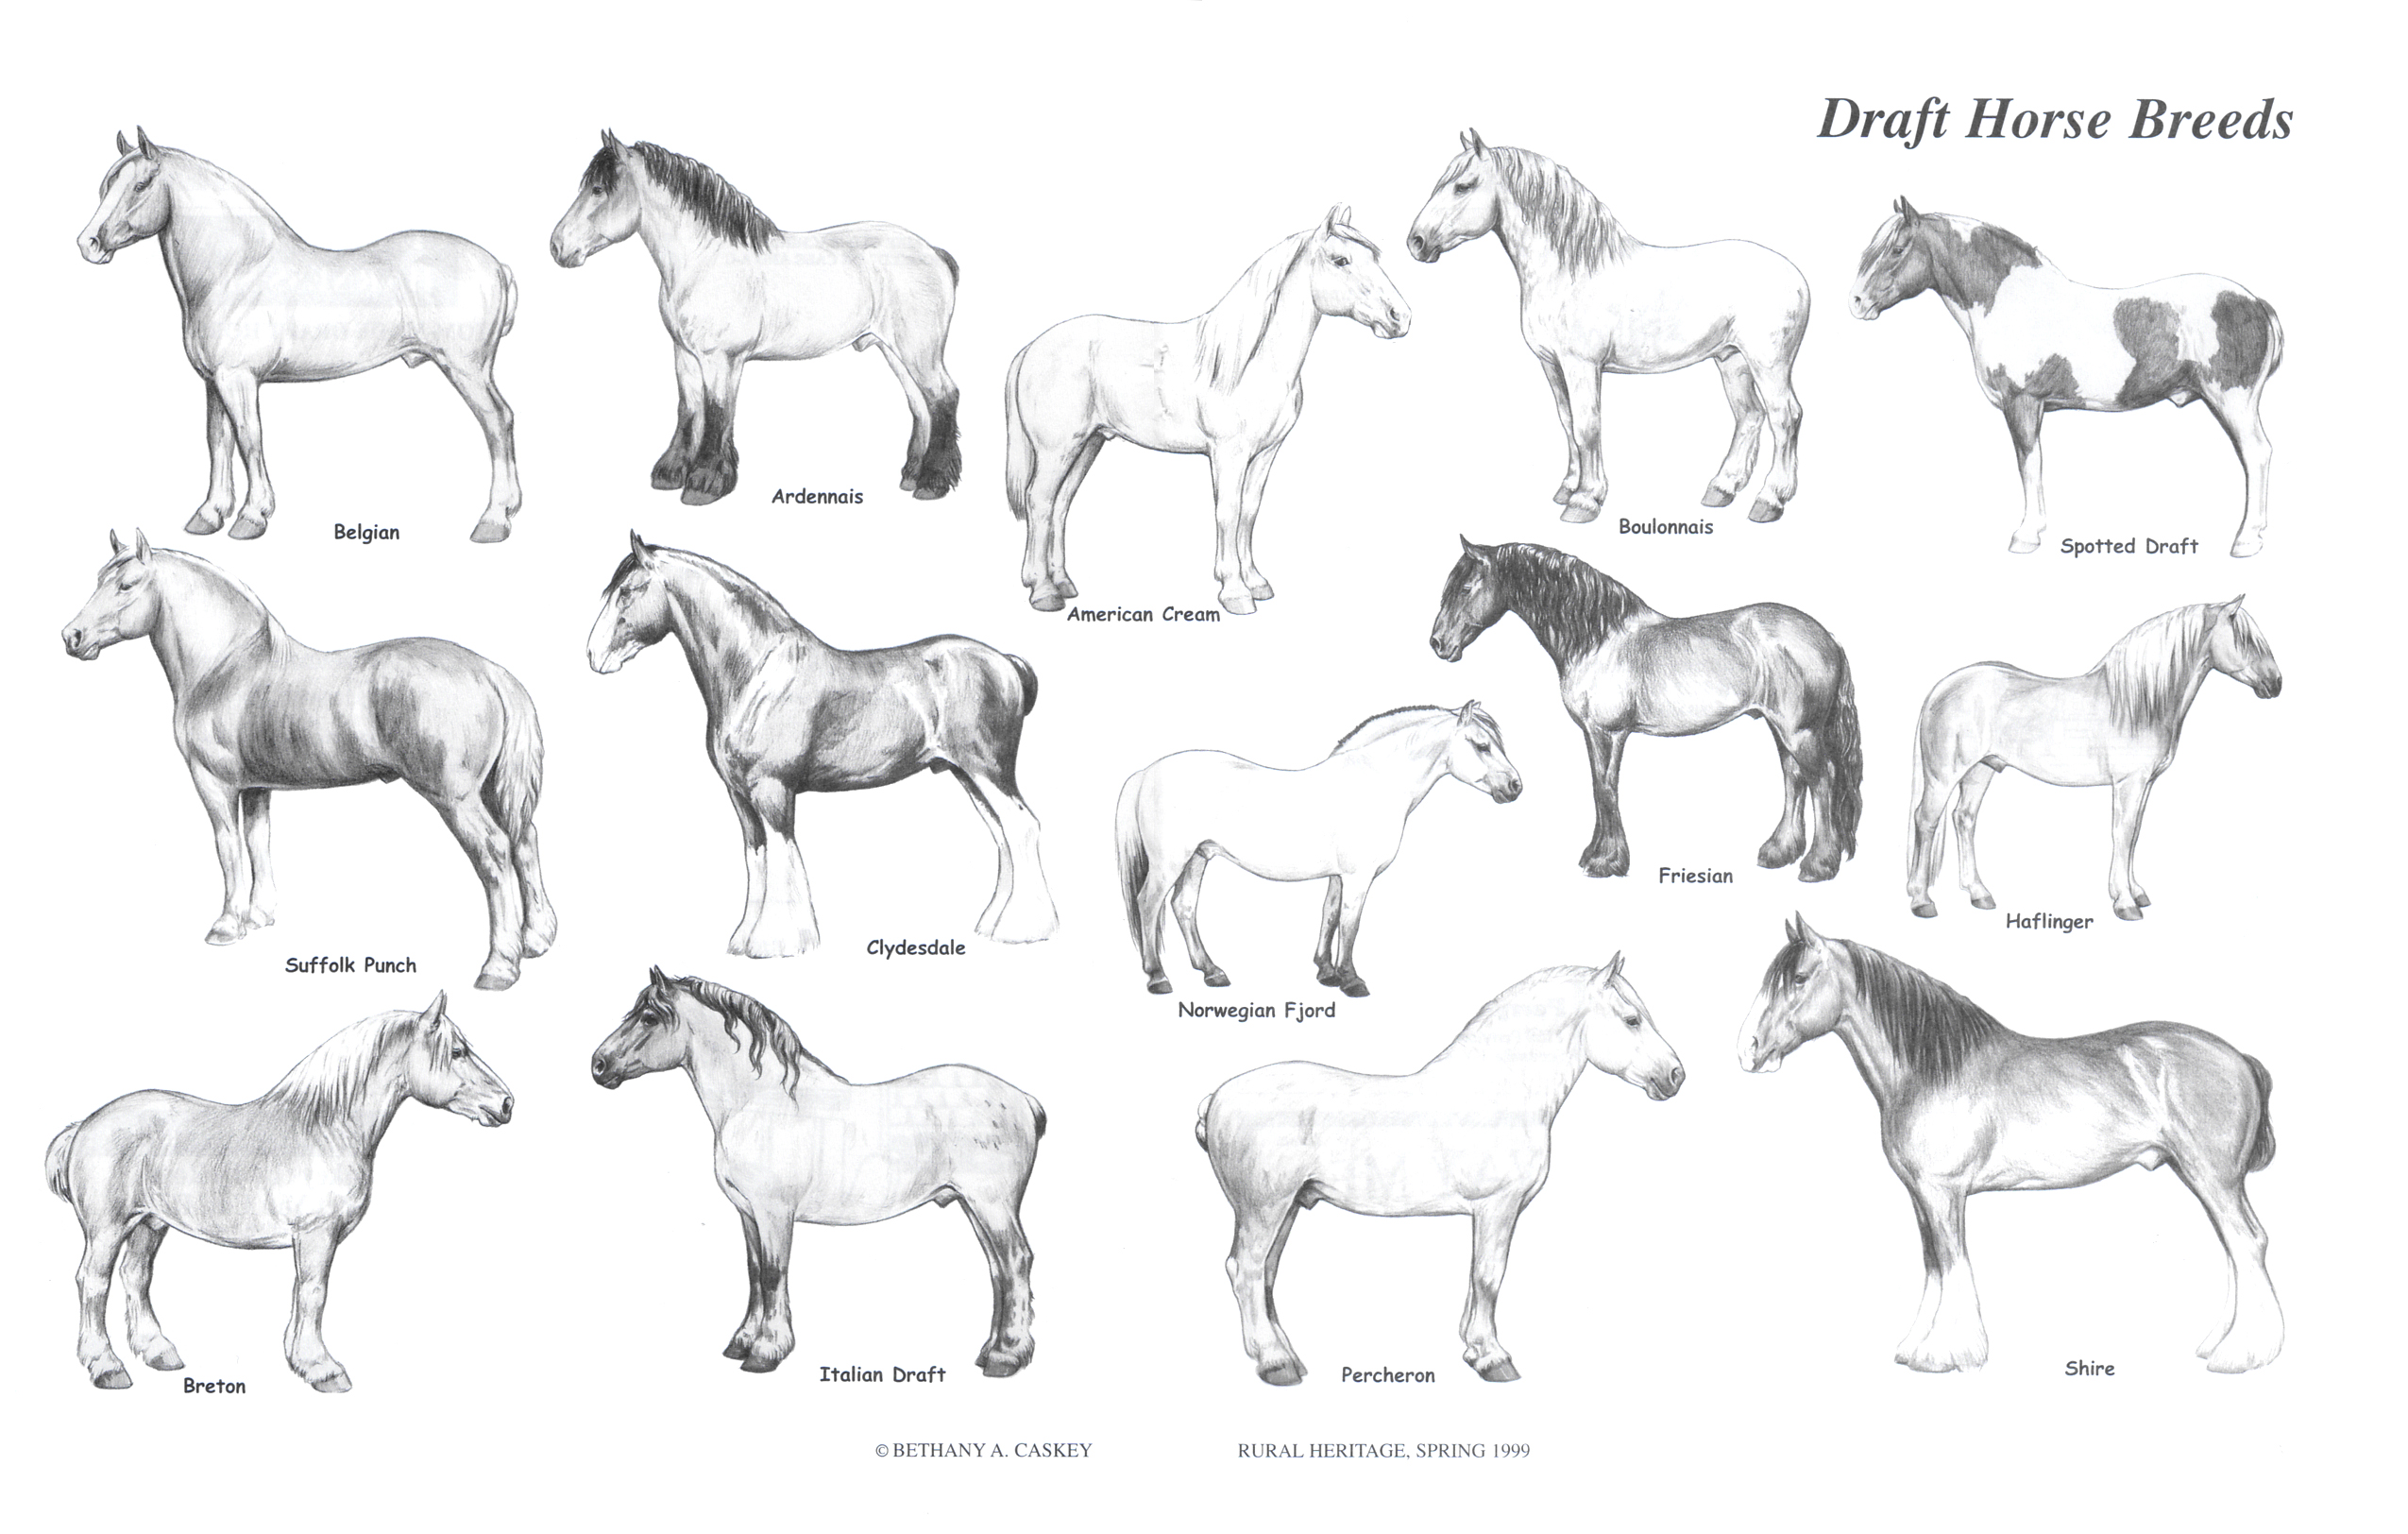 Rural Heritage Draft Horse Breeds Illustration